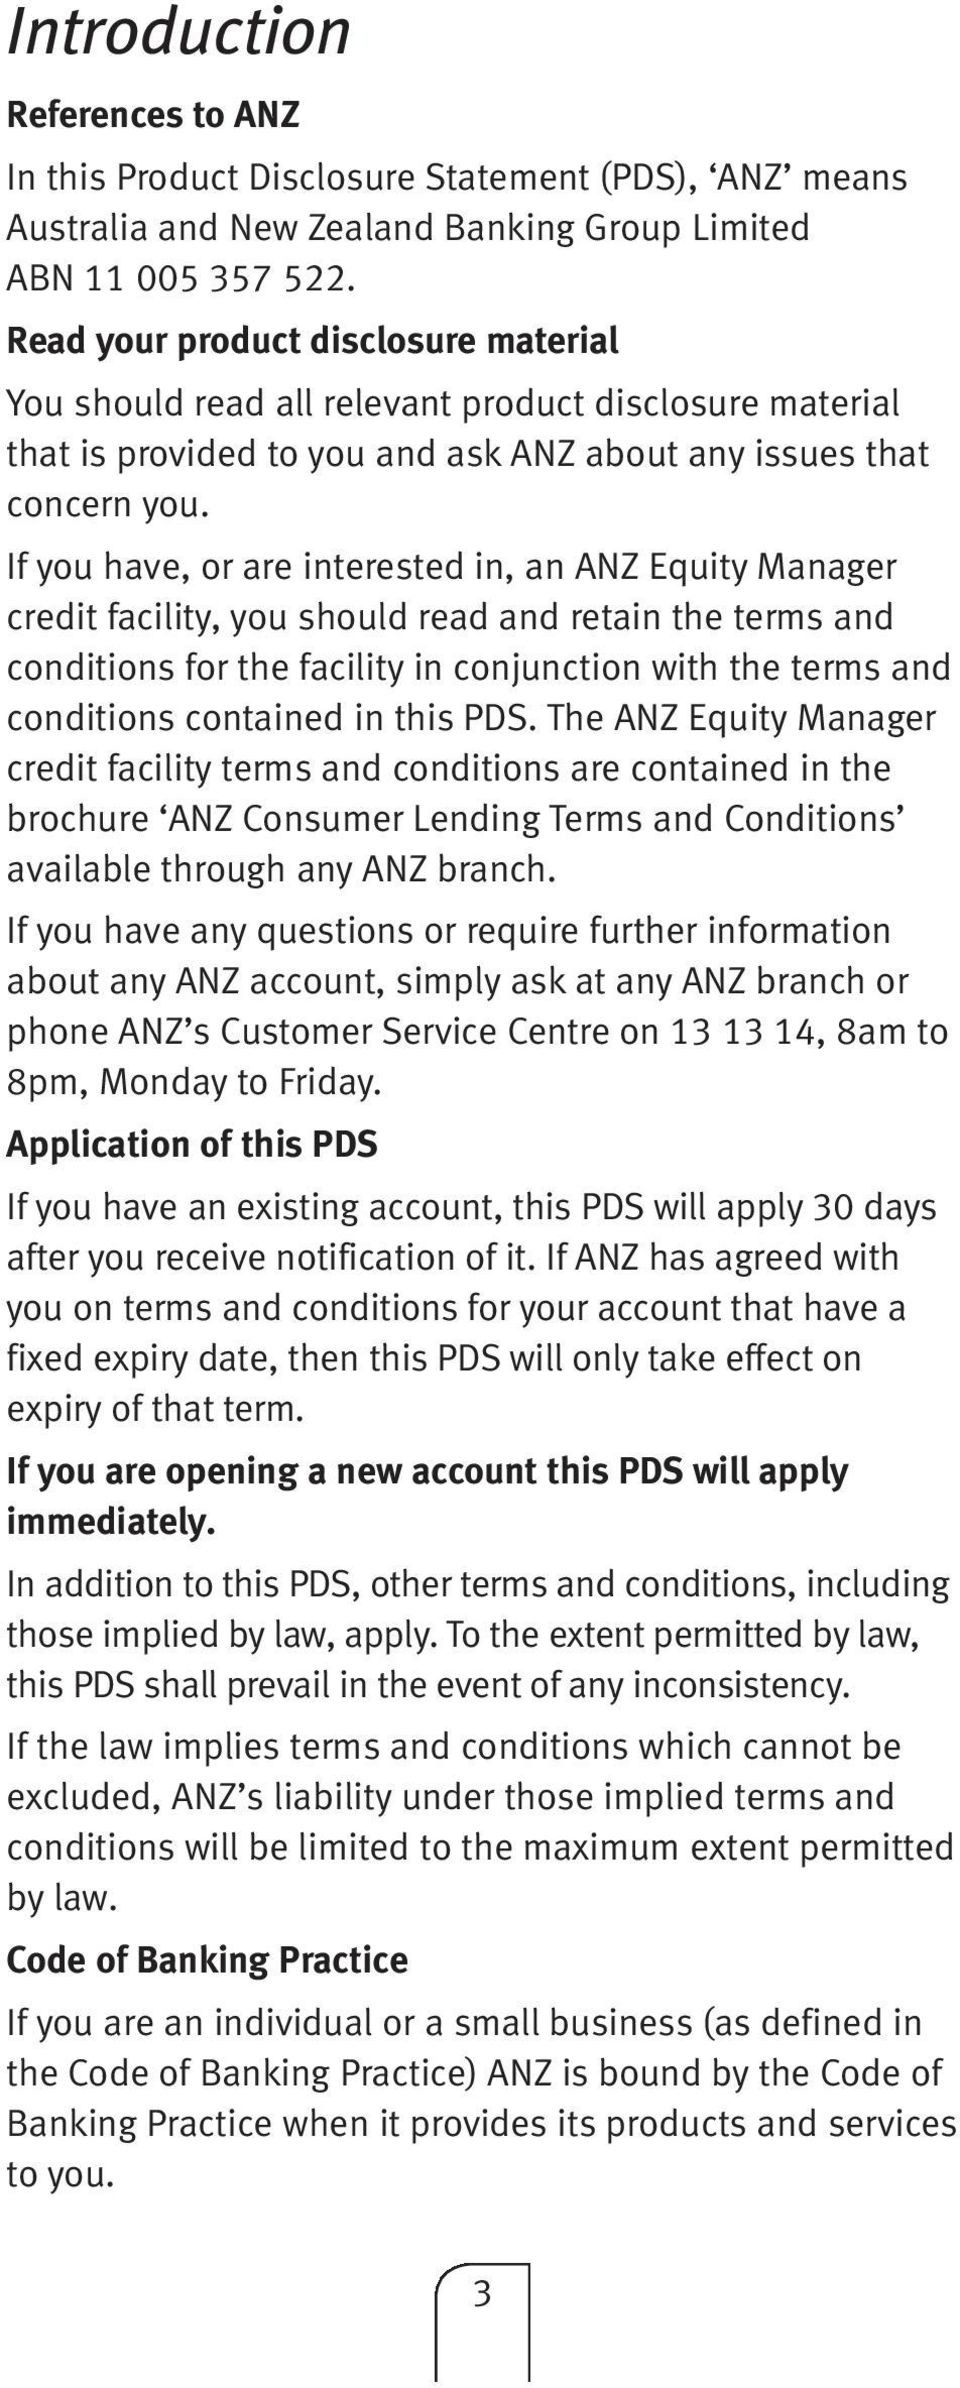 If you have, or are interested in, an ANZ Equity Manager credit facility, you should read and retain the terms and conditions for the facility in conjunction with the terms and conditions contained